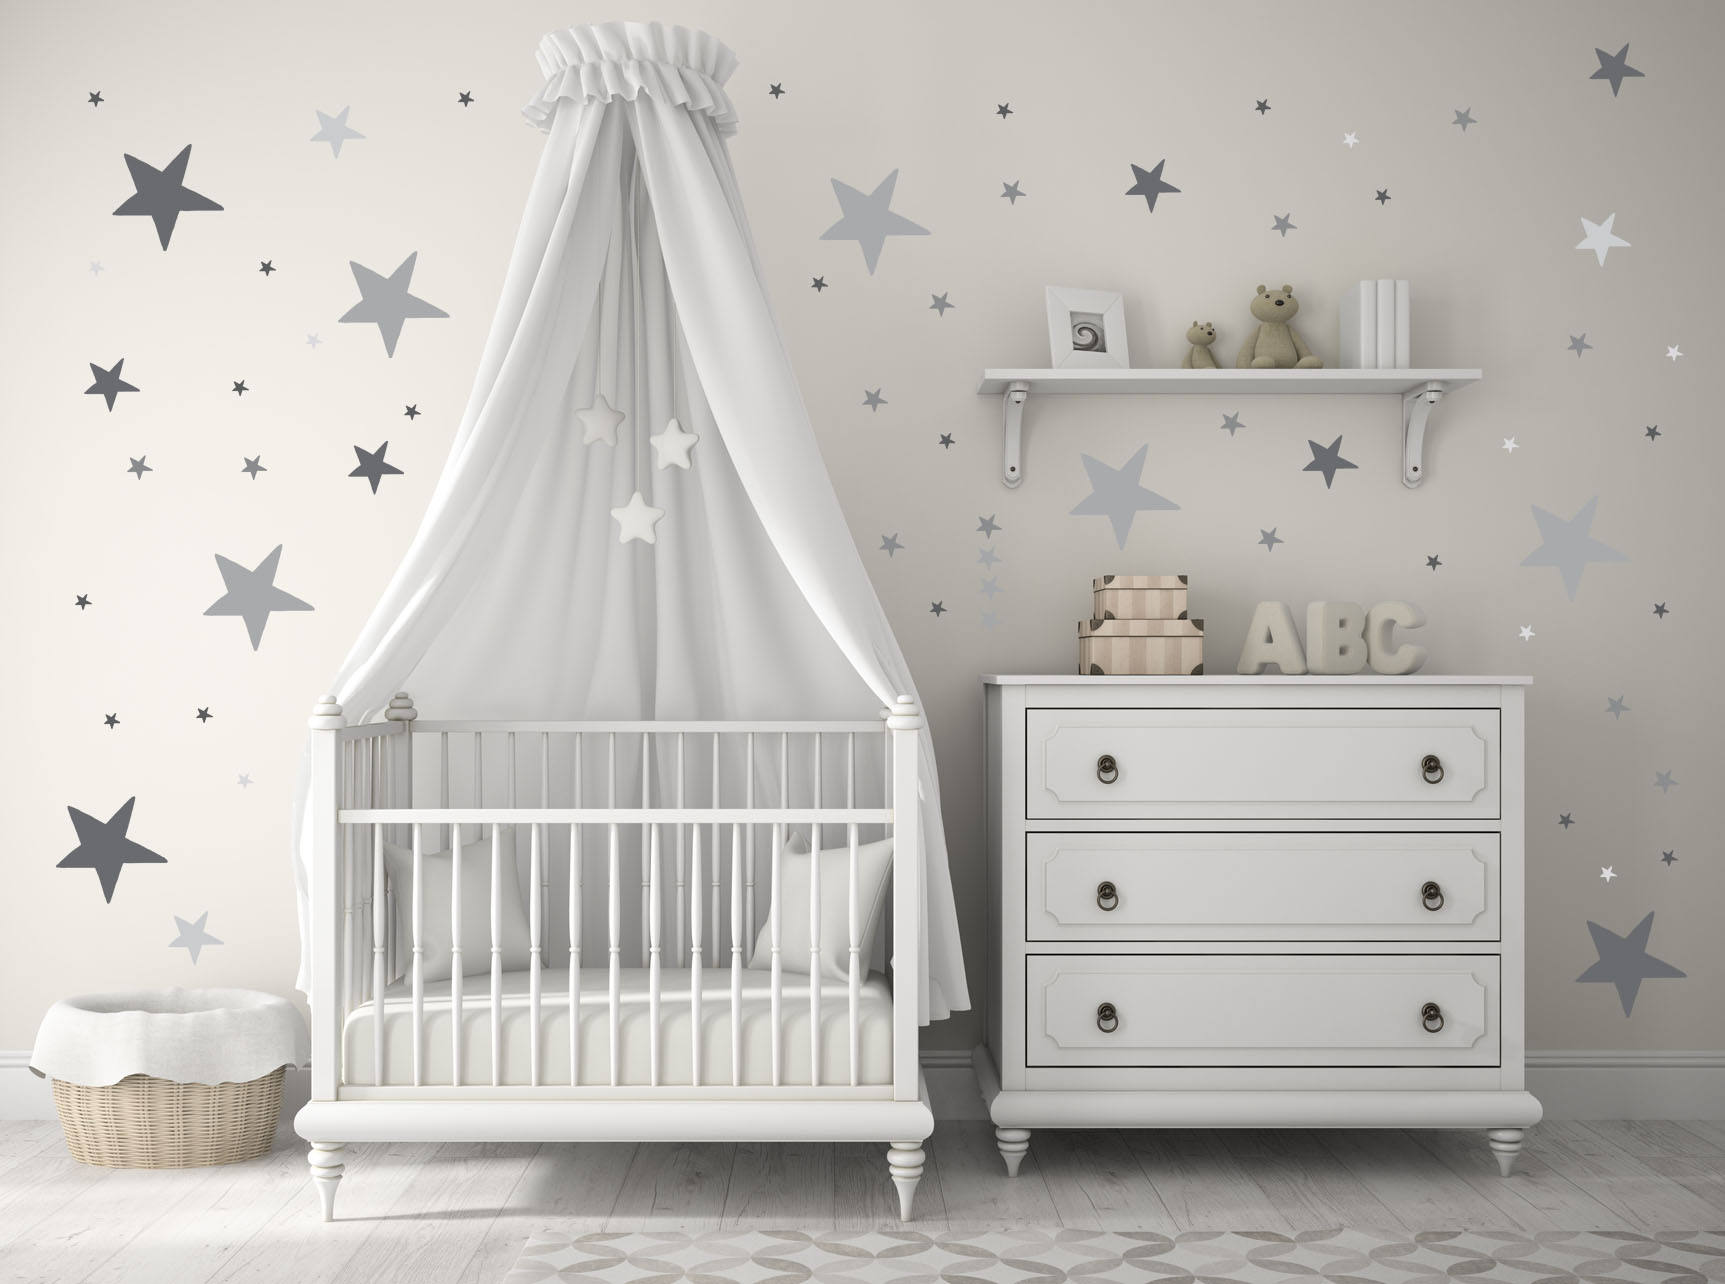 Nursery Decor Baby Nursery Wall Decals Gray Grey Stars | Etsy